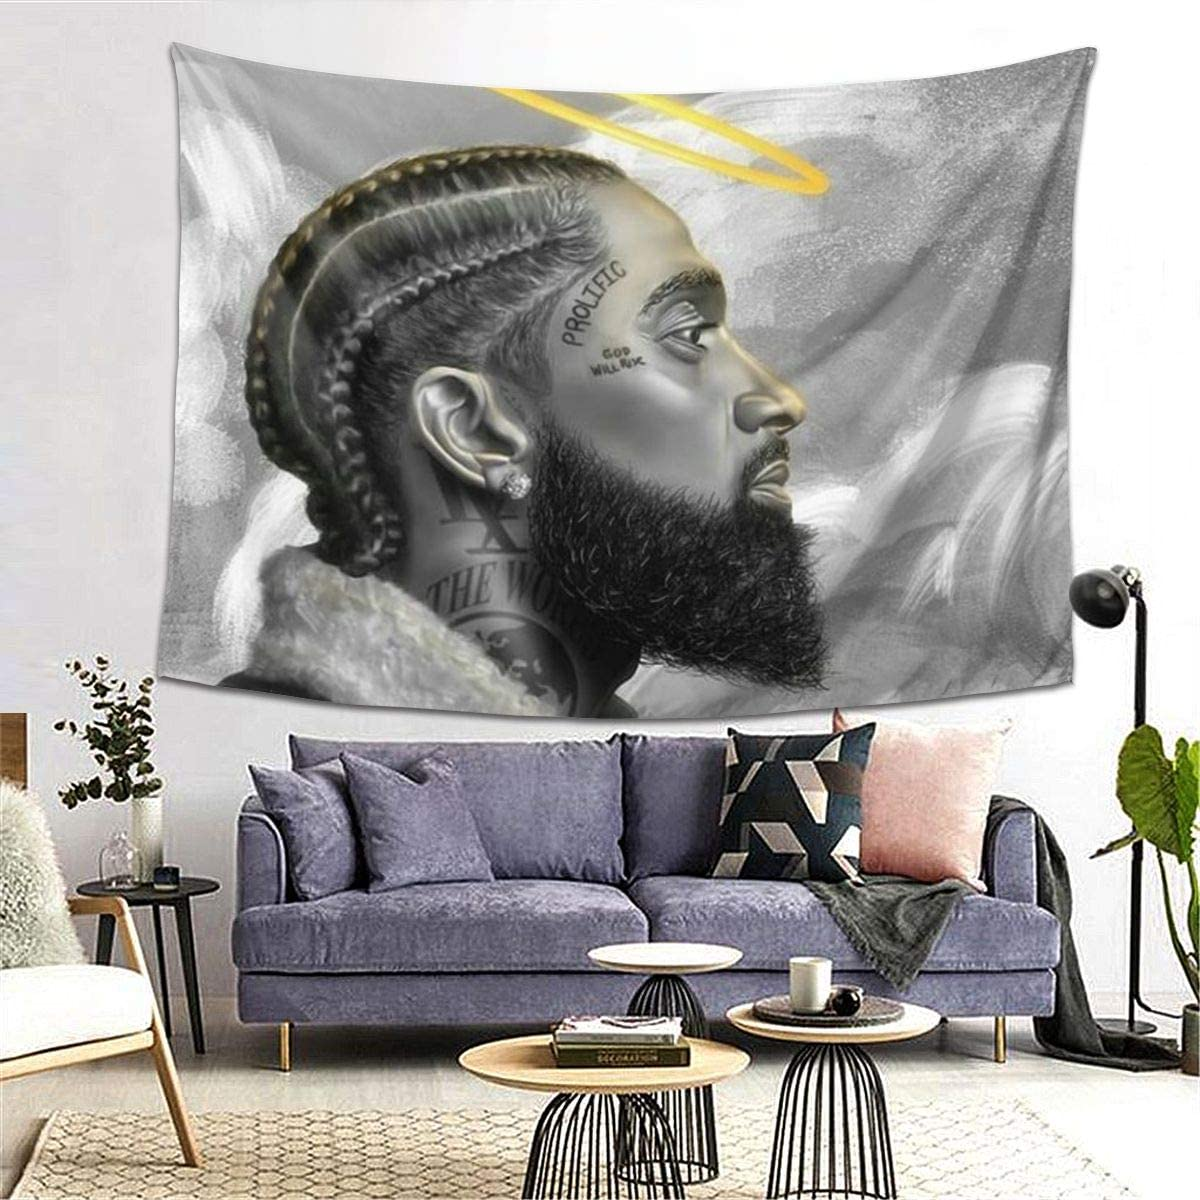 NIPSEY HUS-SLE Rest In Peace Legend Tapestry Wall Hanging Tapestries 3D Printing Blanket Wall Art For Living Room Bedroom Home Decor 80x60in